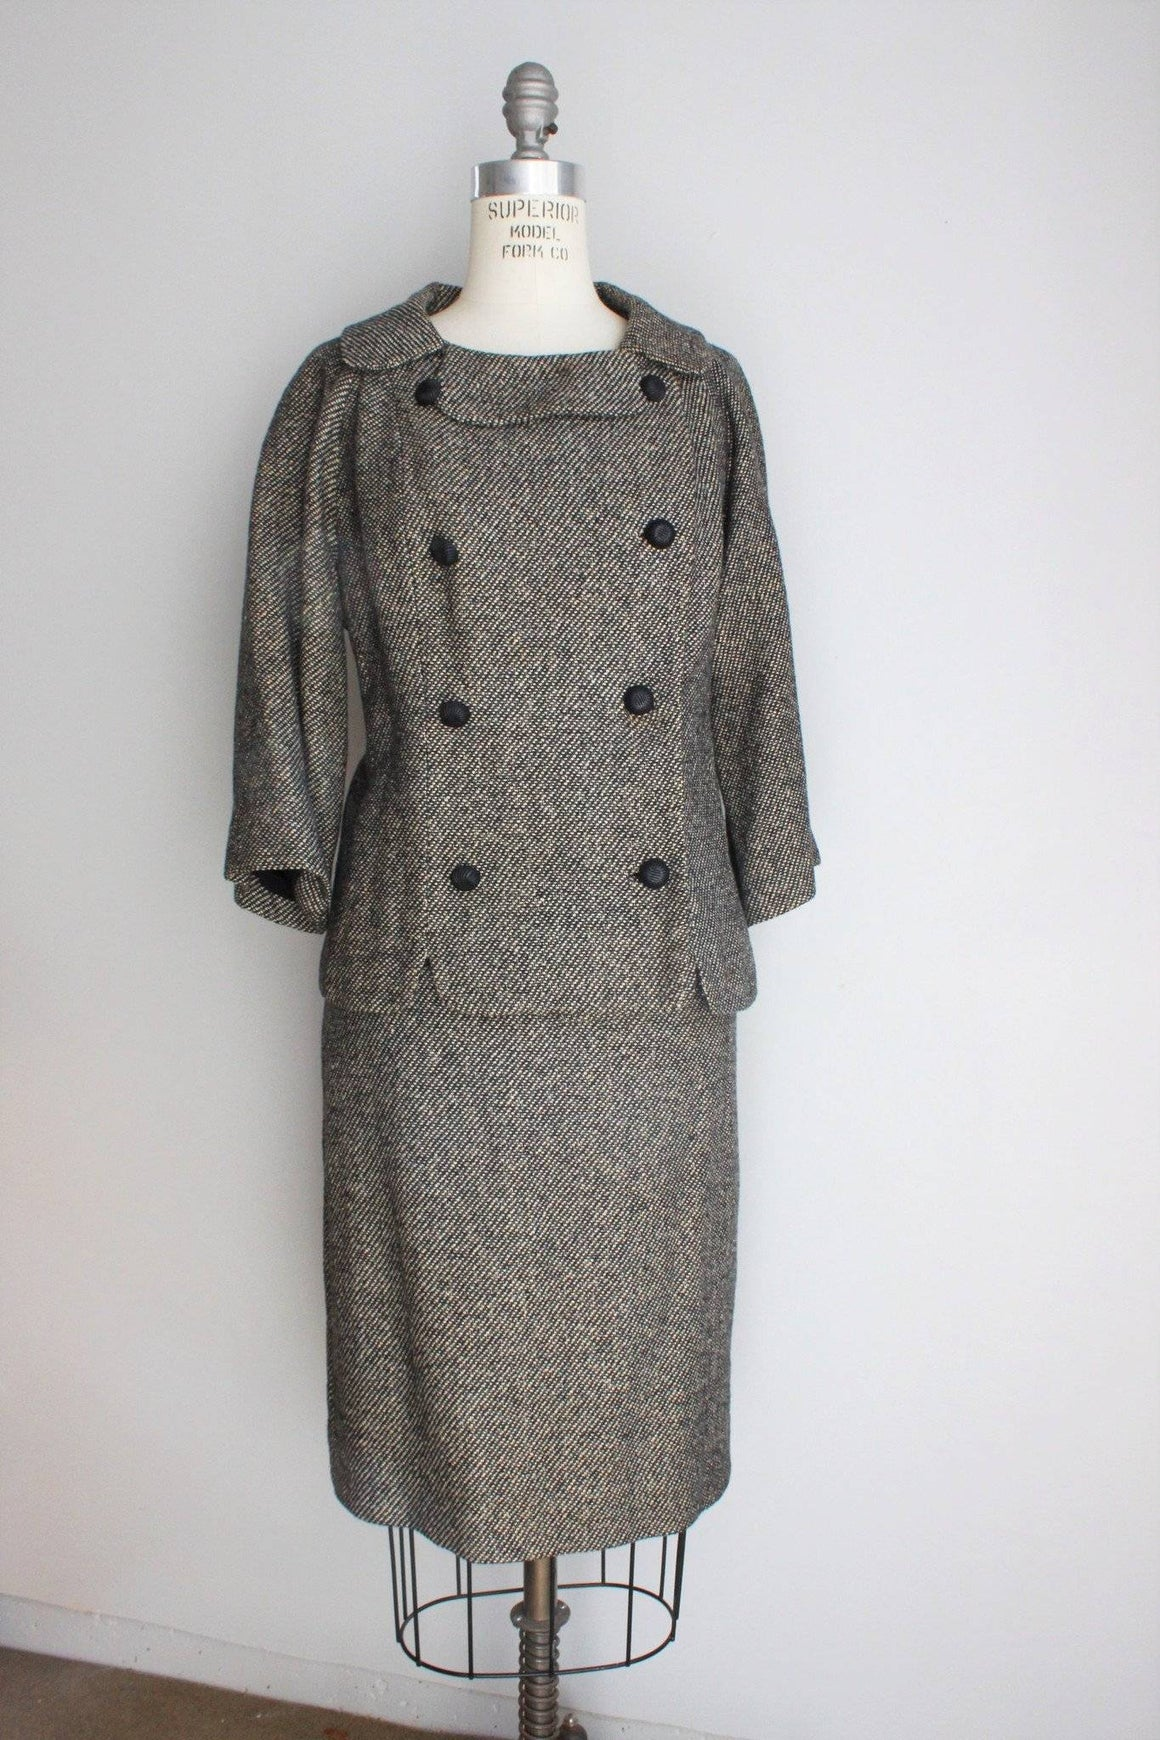 Vintage 1960s Tweed Suit from Sanderson's La Jolla